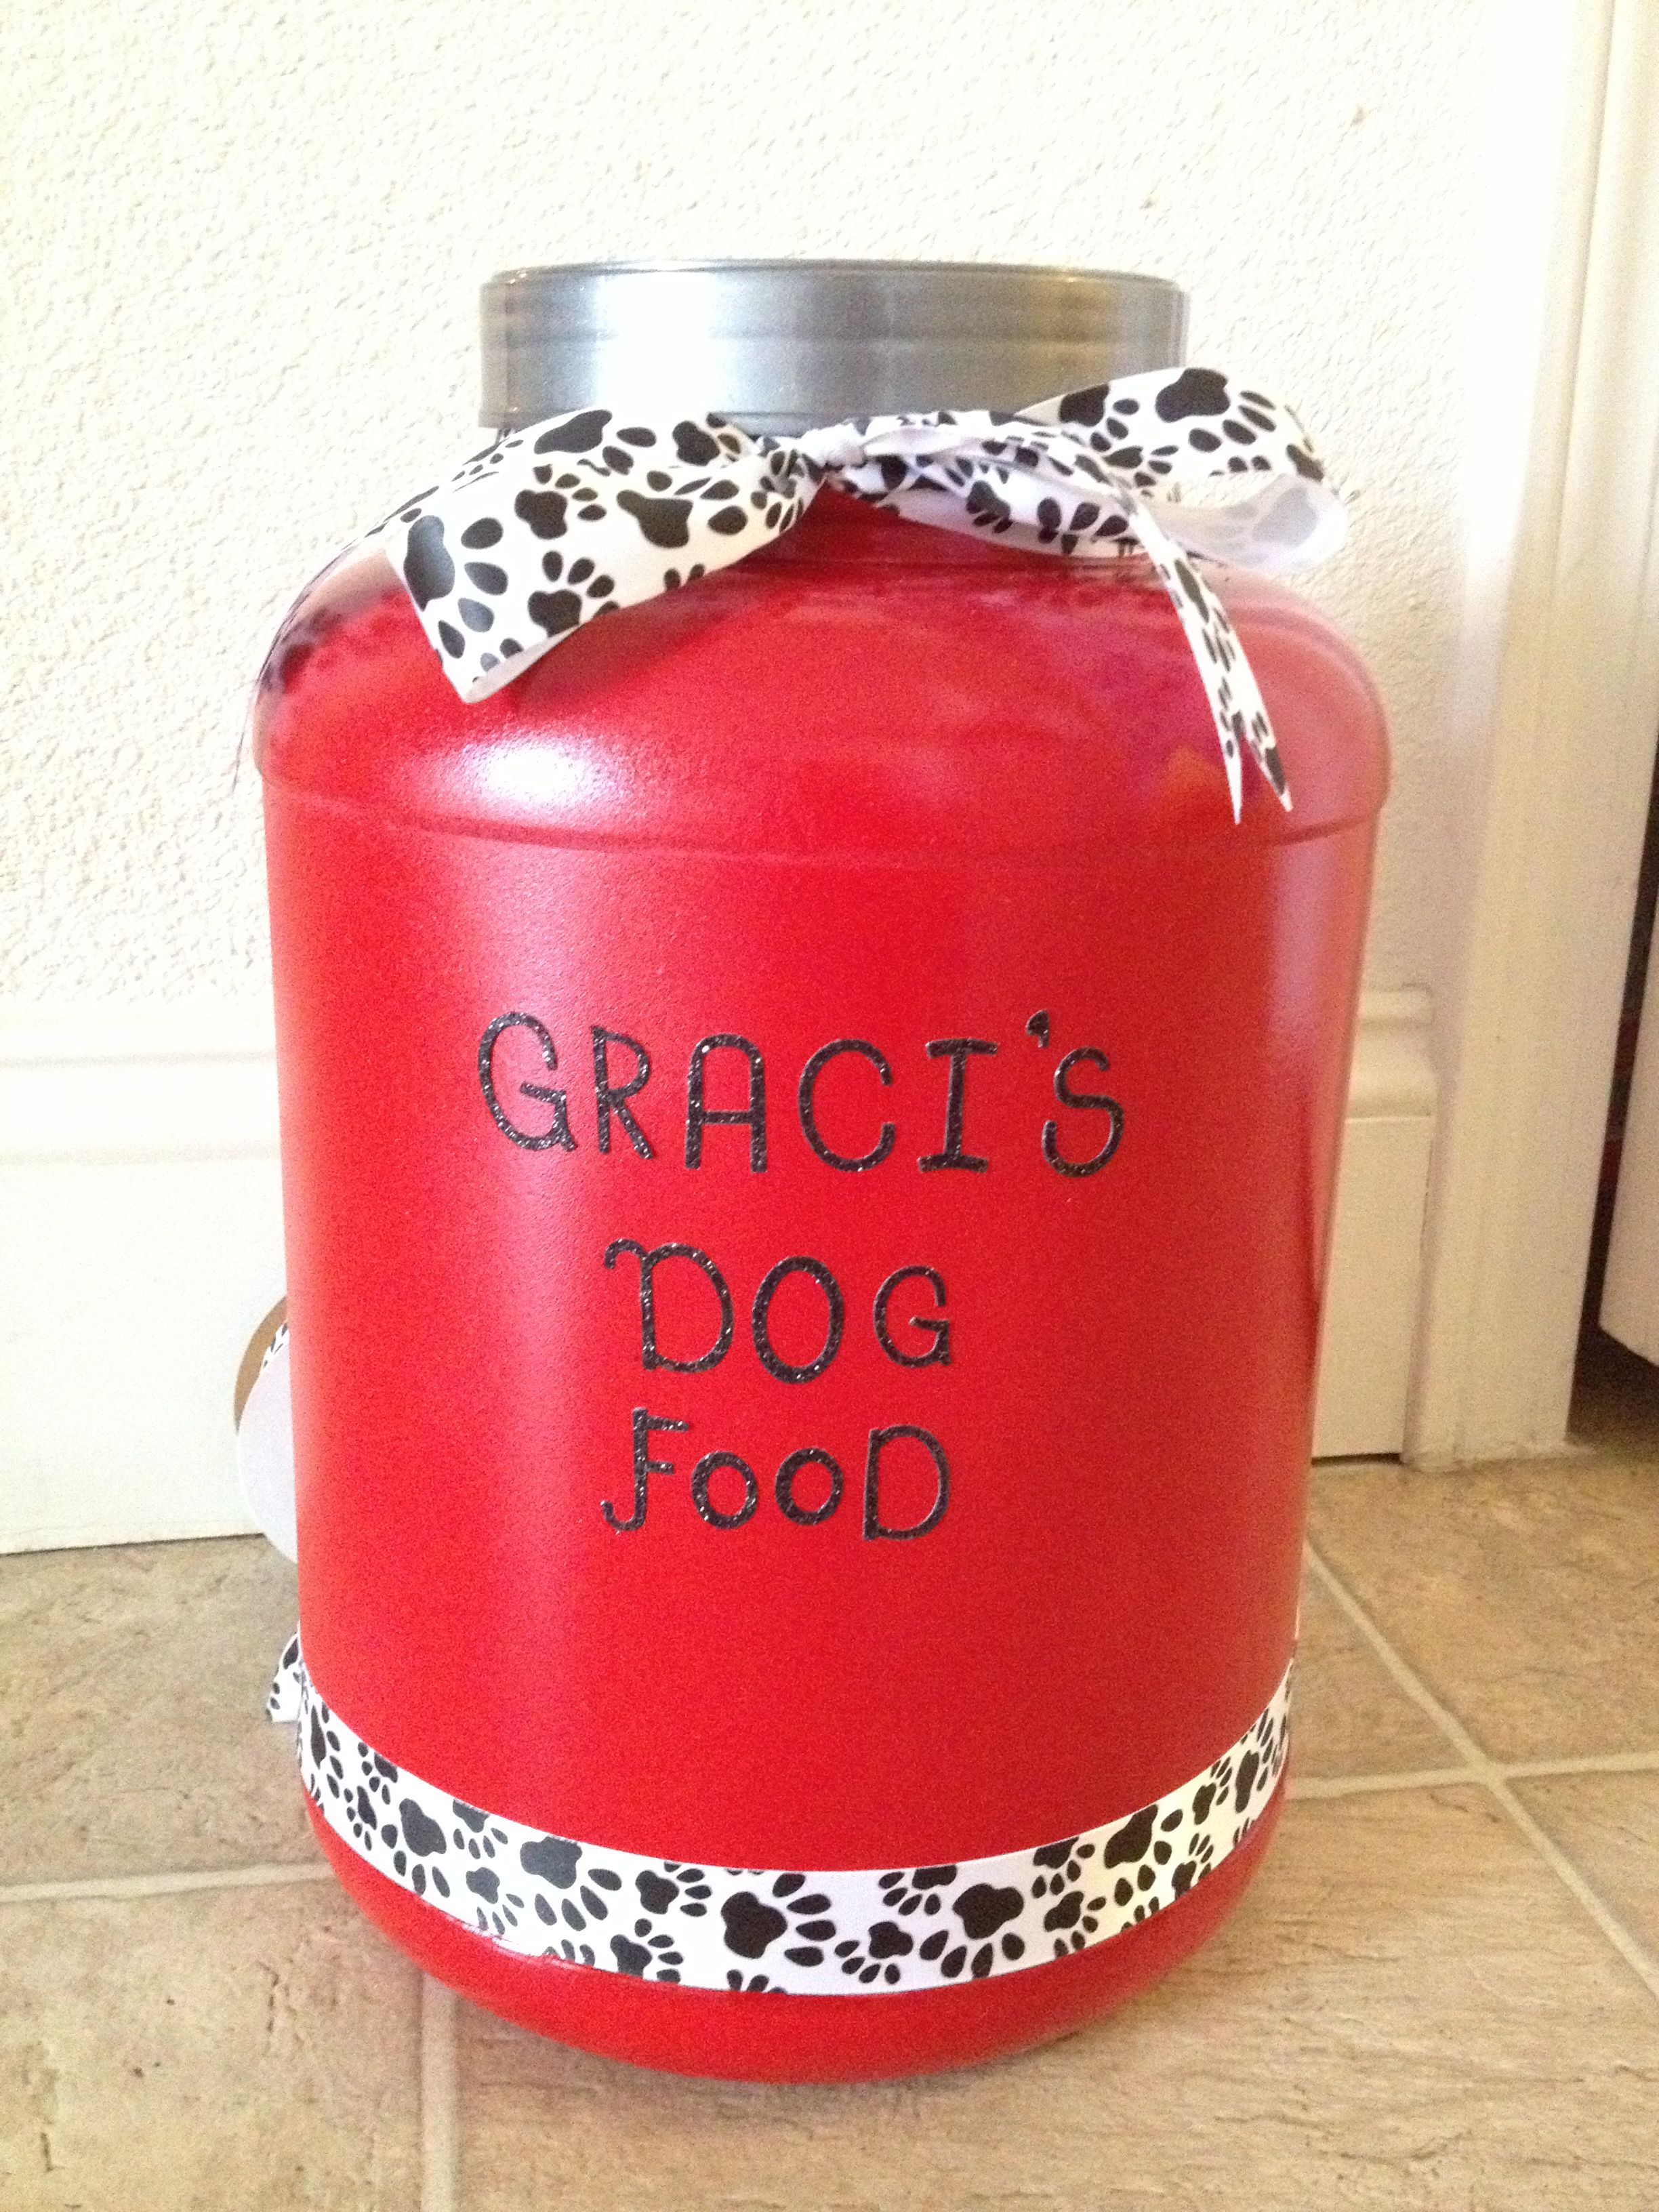 Dyi Dog Food Container I Took My Husbands Whey Protein Container And Spray Painted It And Bam Created For Anothe Dog Food Container Diy Dog Food Diy Dog Stuff